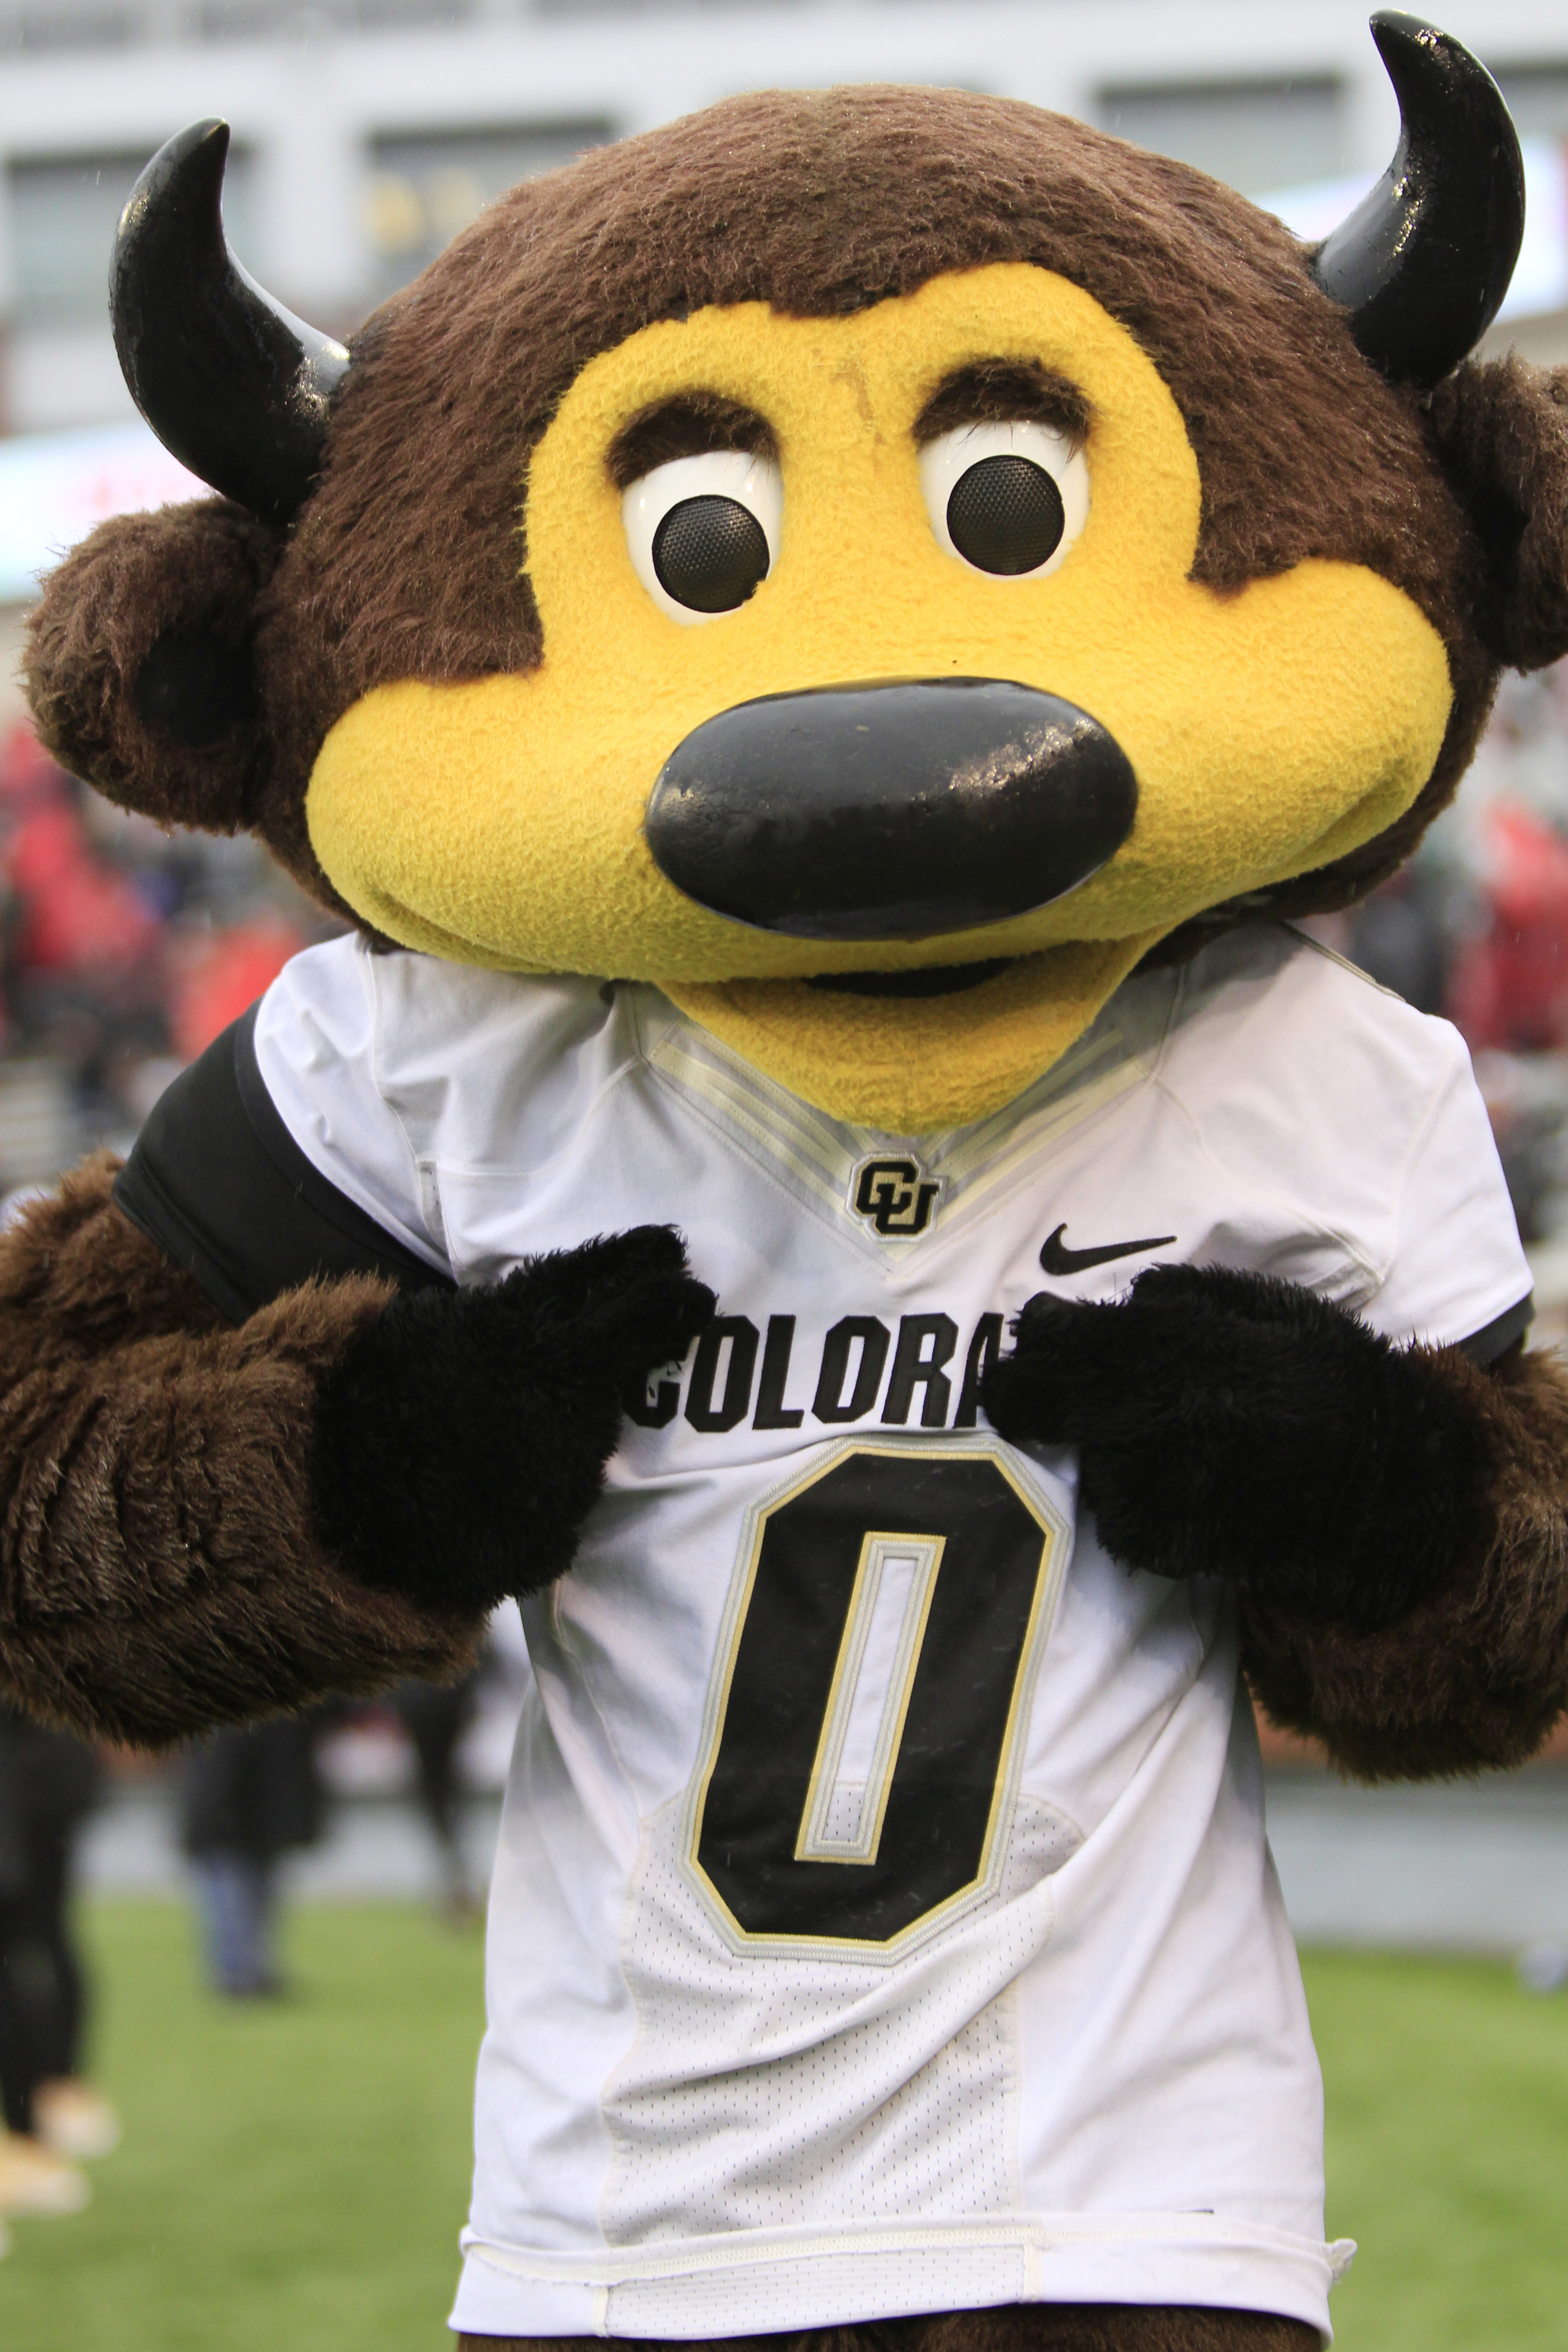 Brown Buffalo mascot with yellow face.